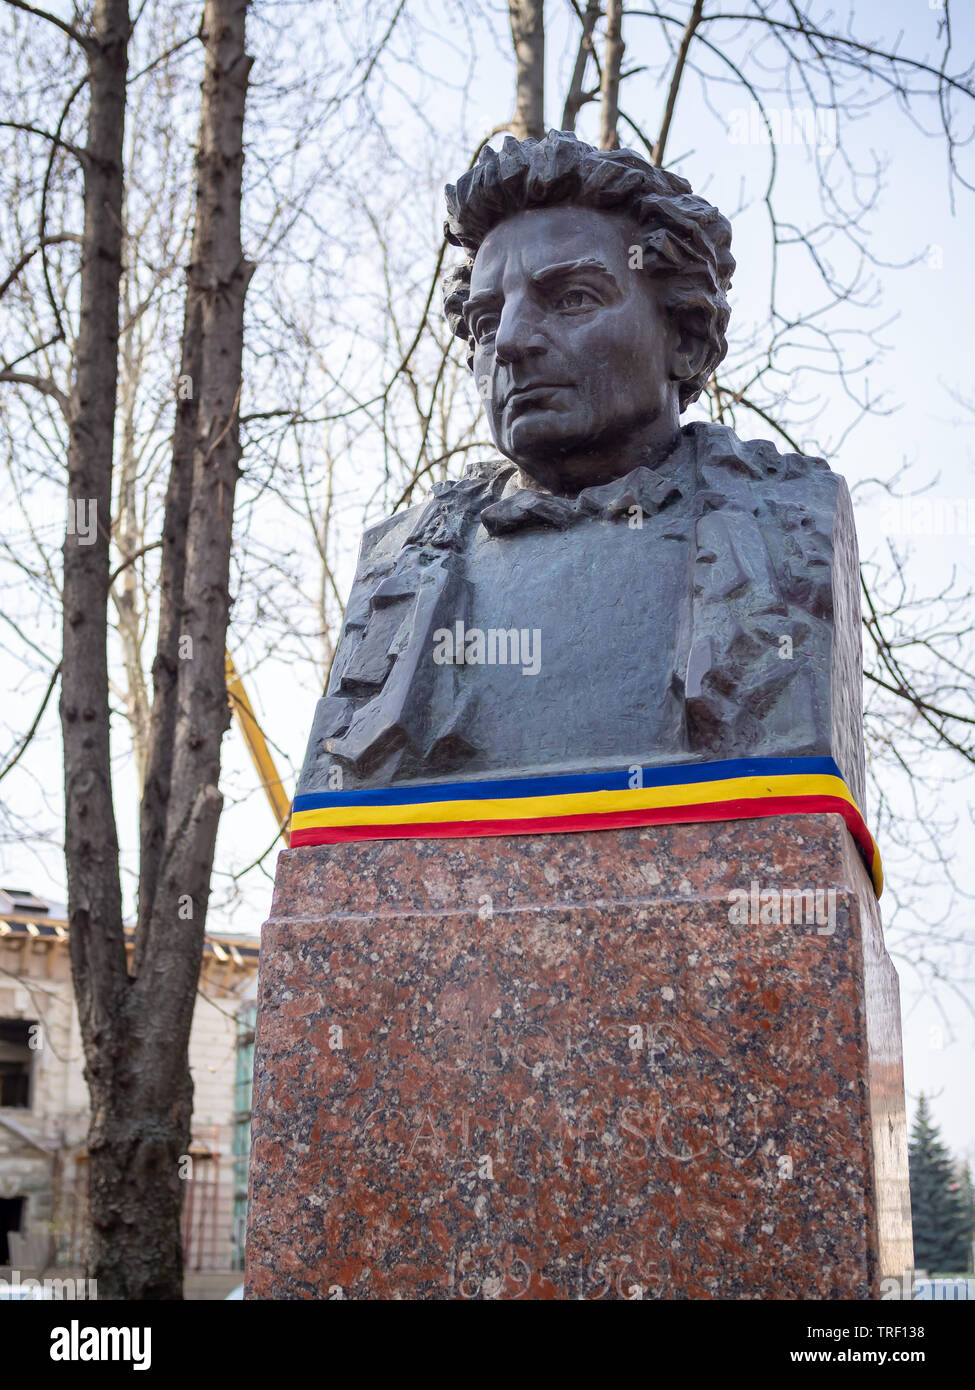 CHISINAU, MOLDOVA-MARCH 21, 2019: George Calinescu bust by Serghei Ganenko in the Alley of Classics - Stock Image